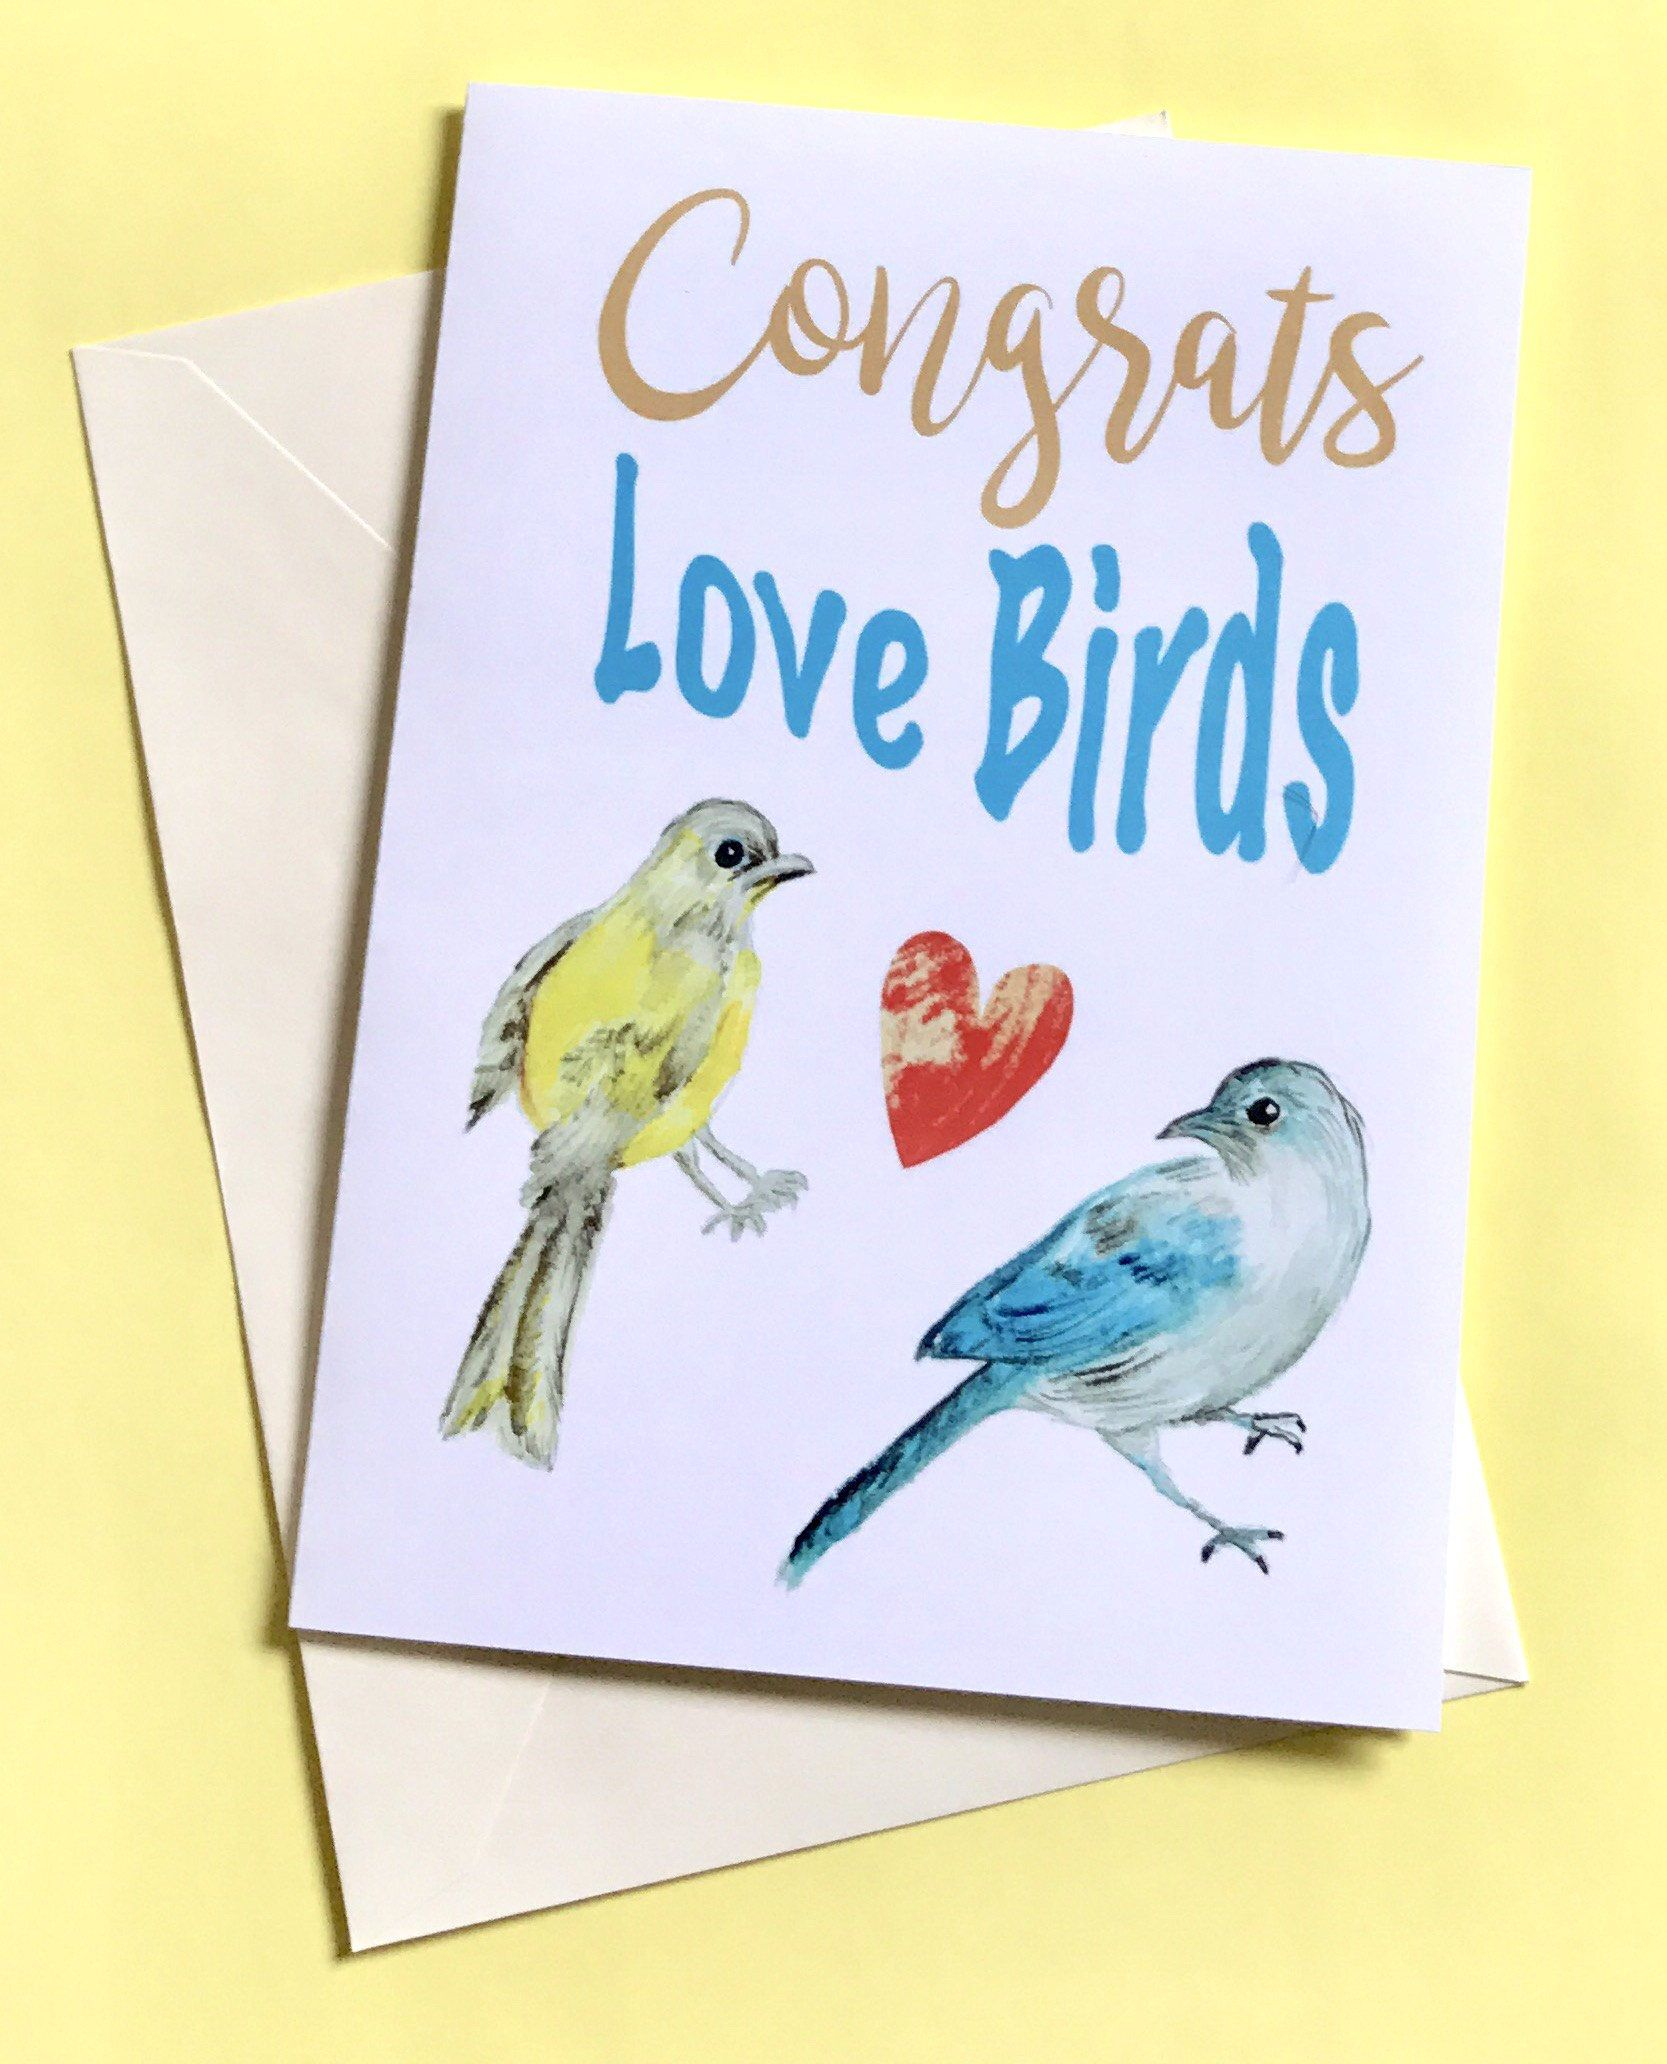 Congrats Wedding Card Congratulations Card Unique Love Birds Card